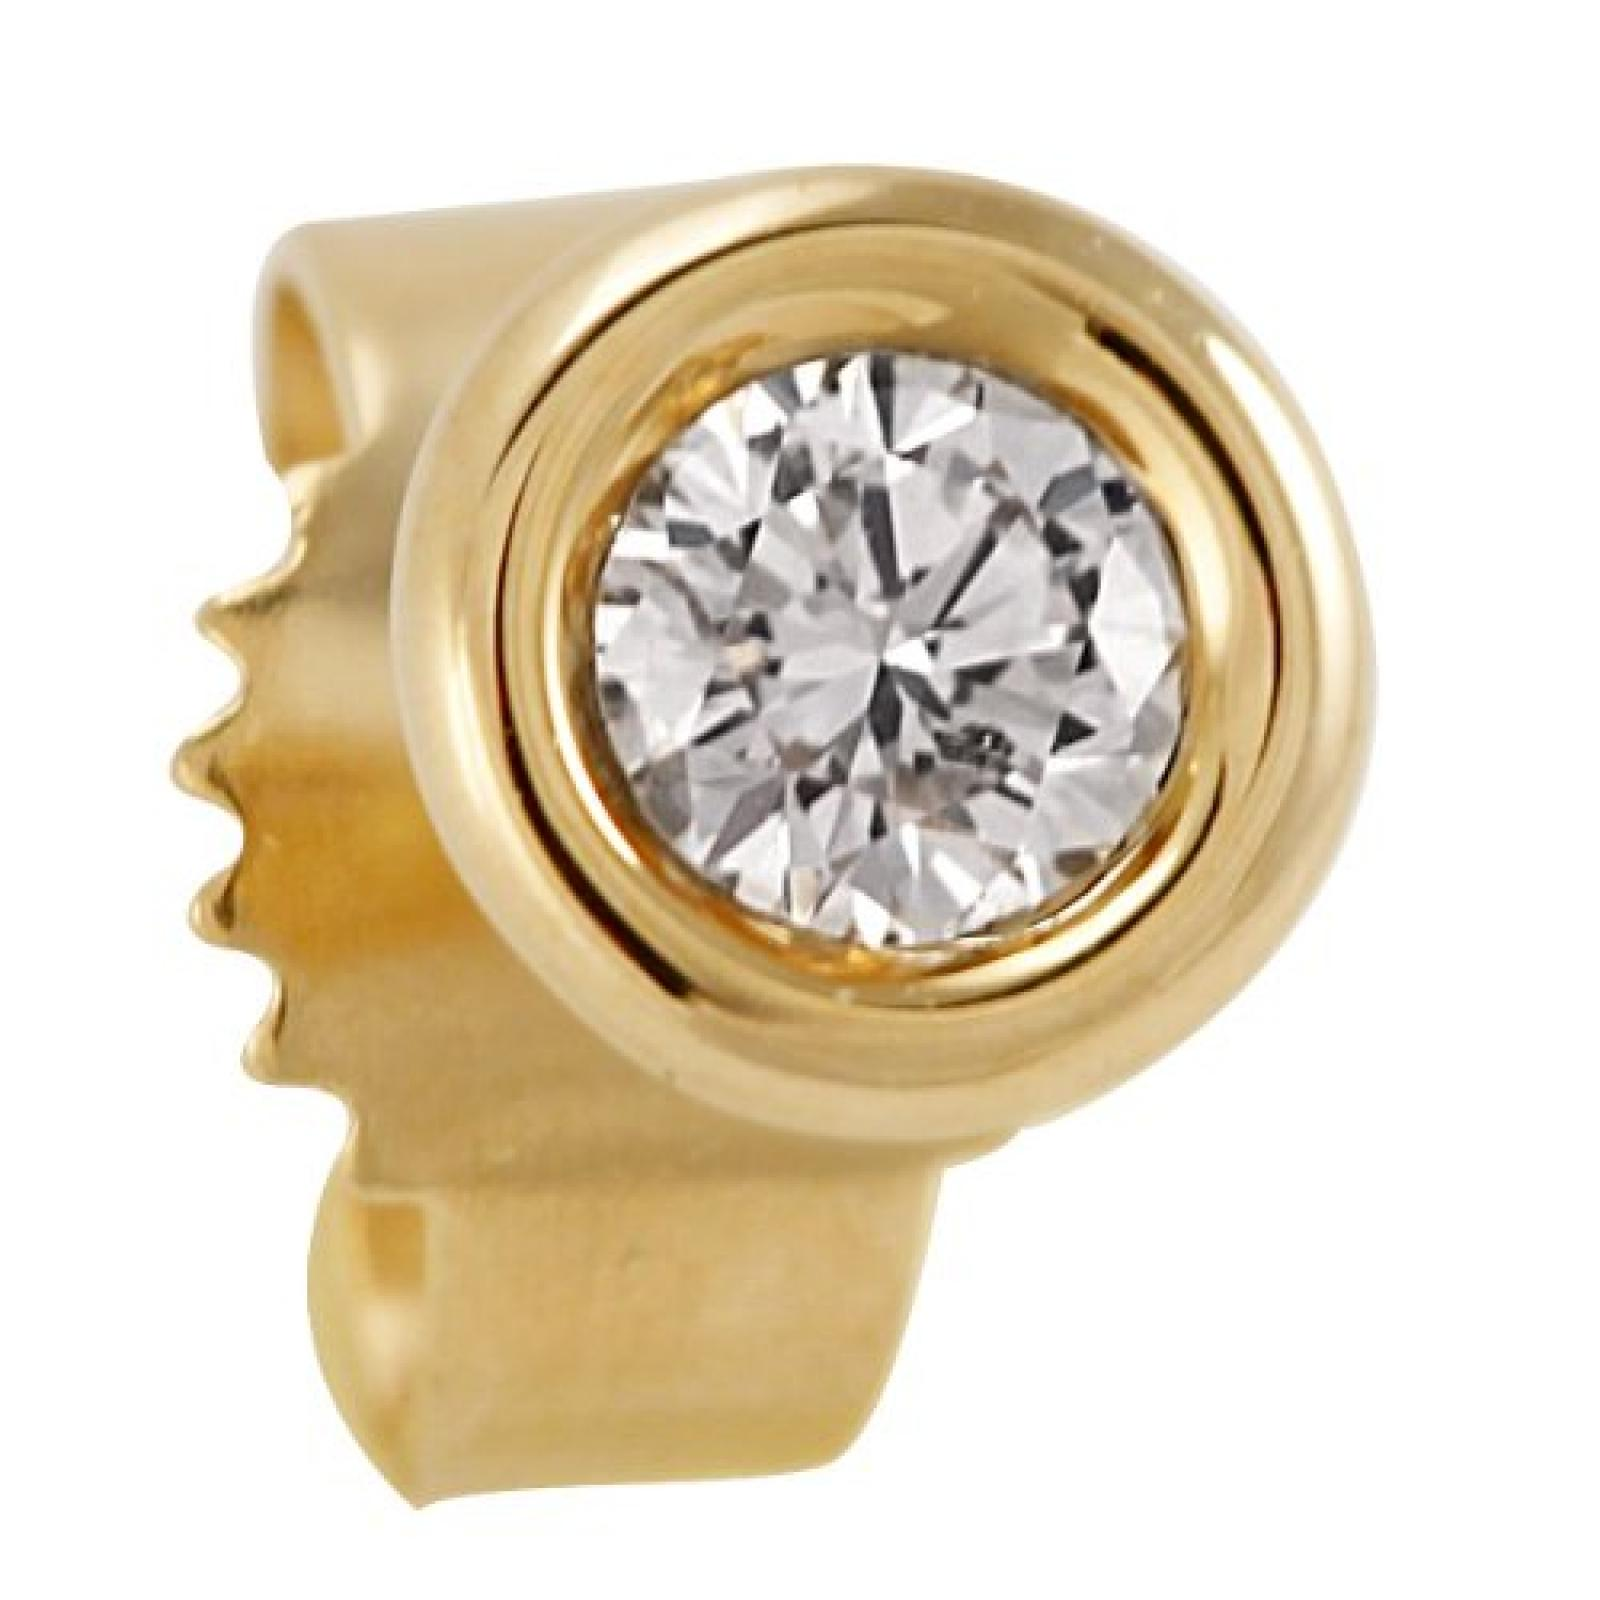 Bella Donna Unisex-Ohrstecker 585 Gelbgold 1 Diamant 0.10ct farblos 5 mm 635579